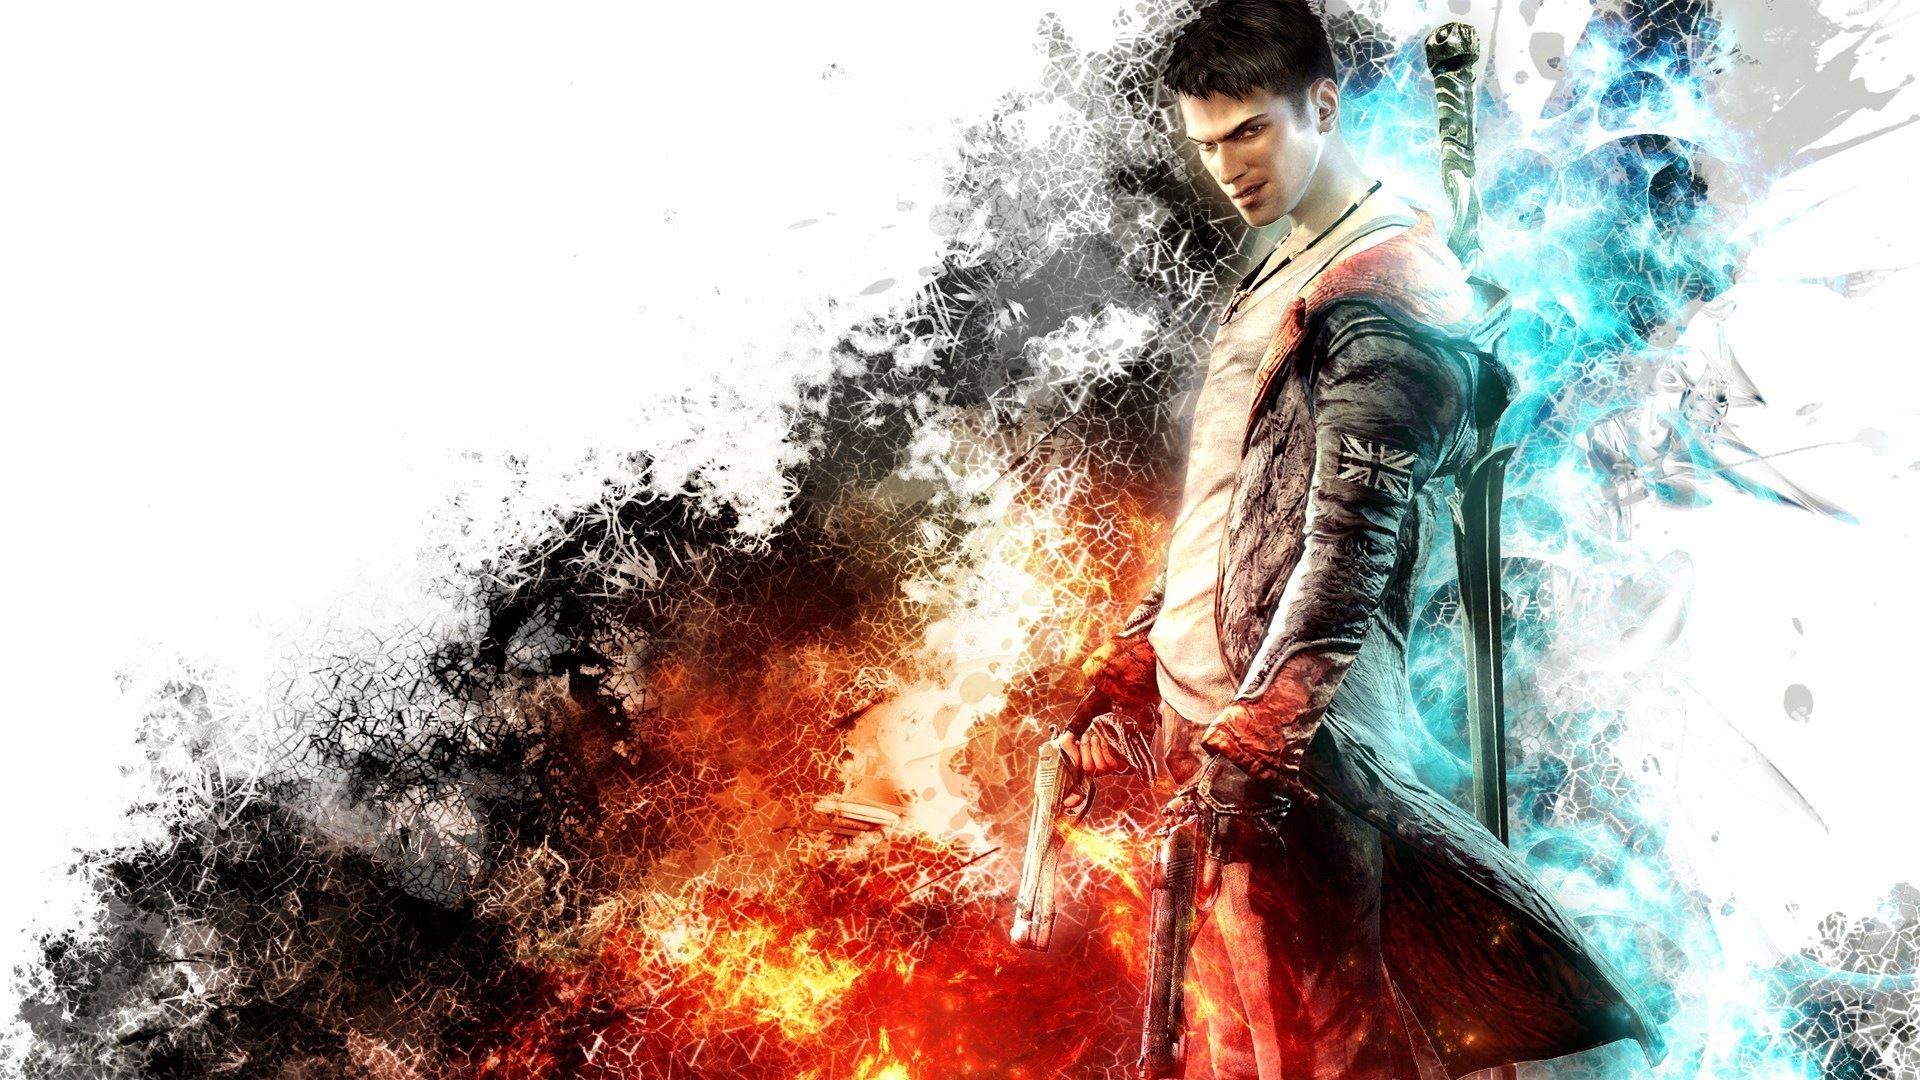 Wallpapers Devil May Cry 5 Wallpaper Cave